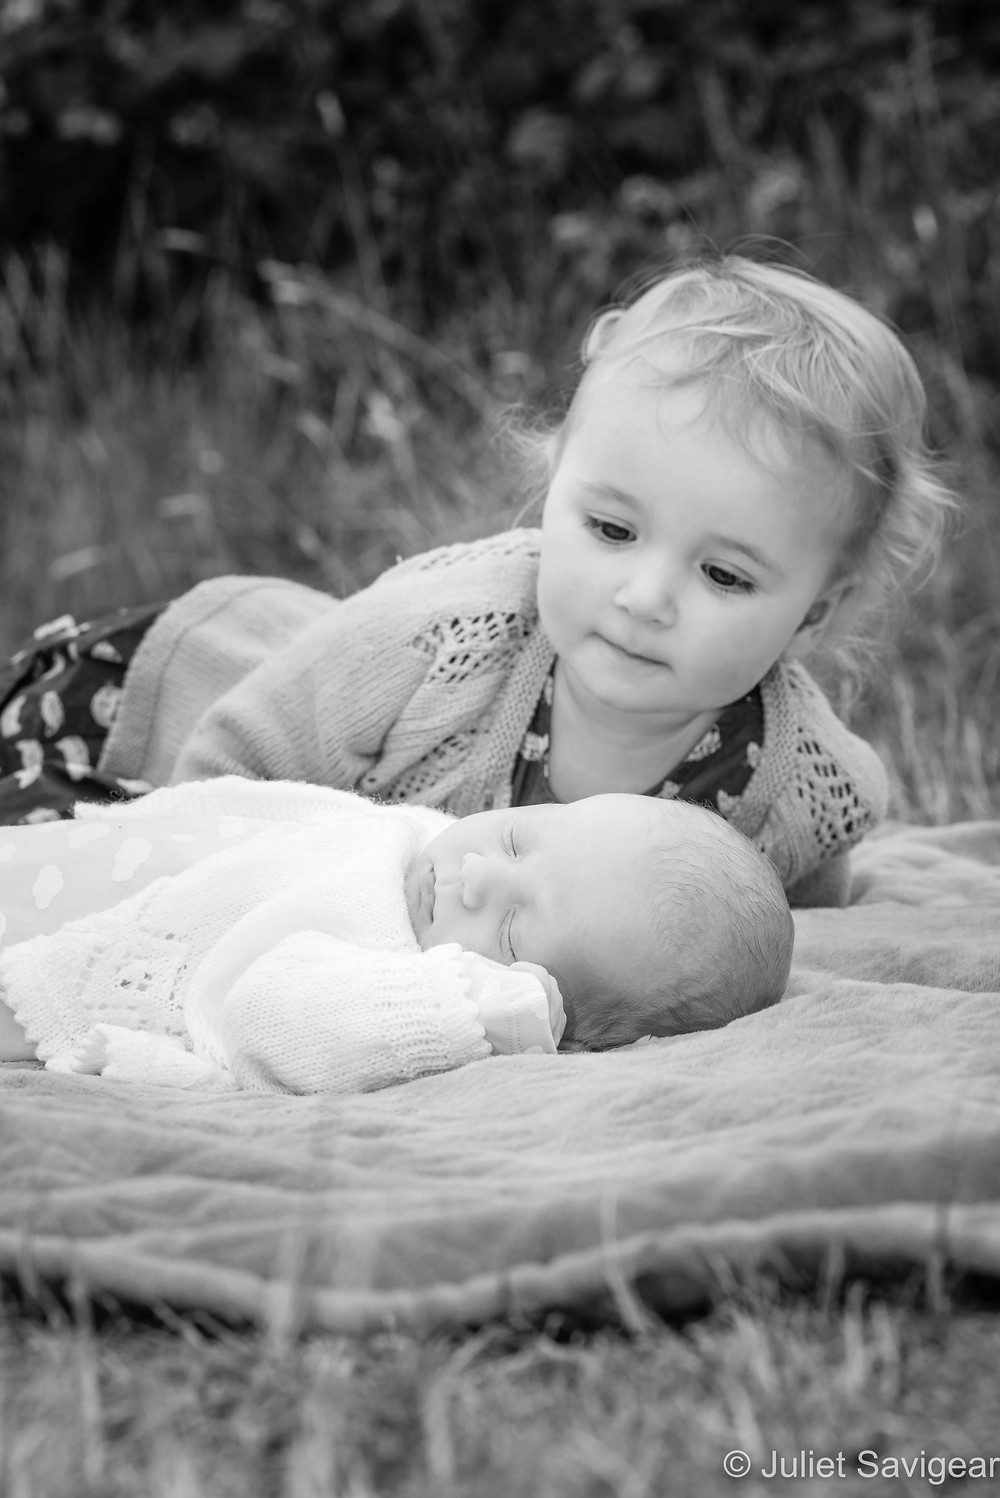 Toddler with newborn baby